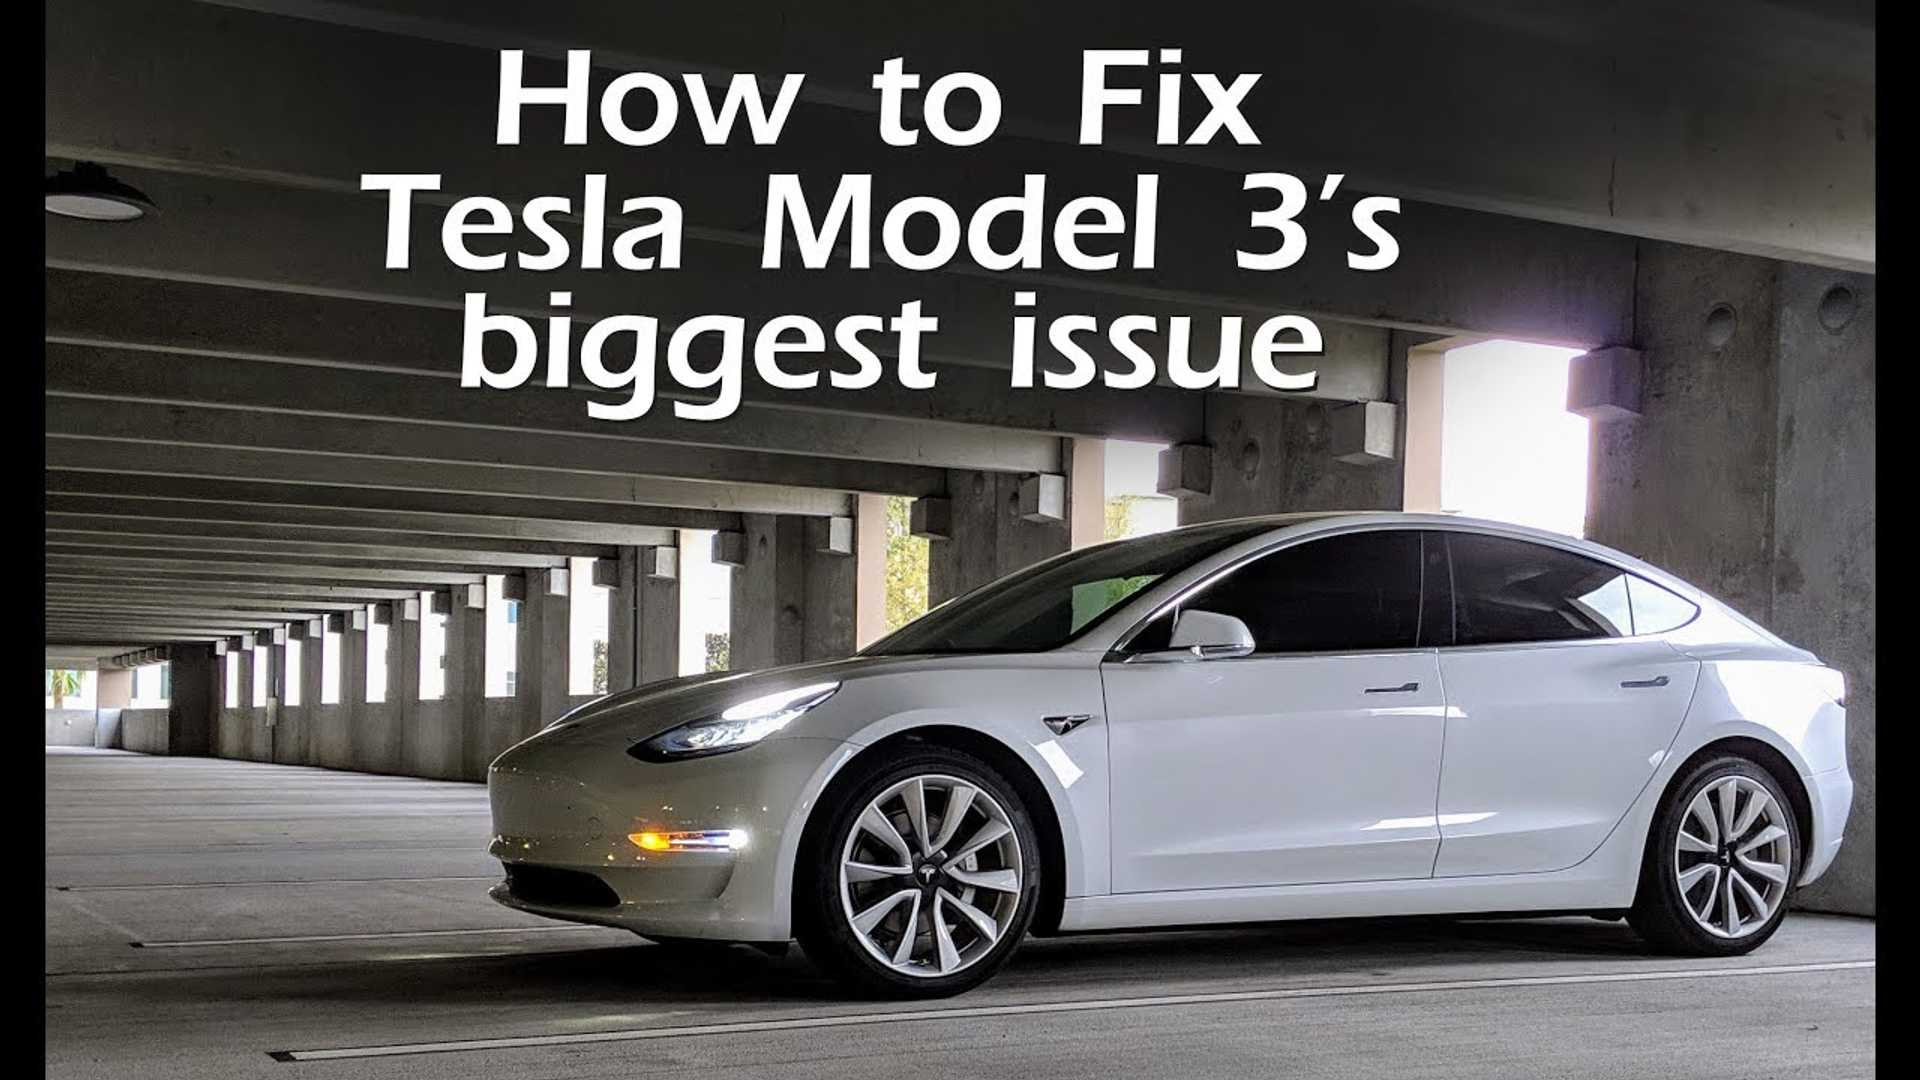 What's The Biggest Issue With The Tesla Model 3 & How to Fix It